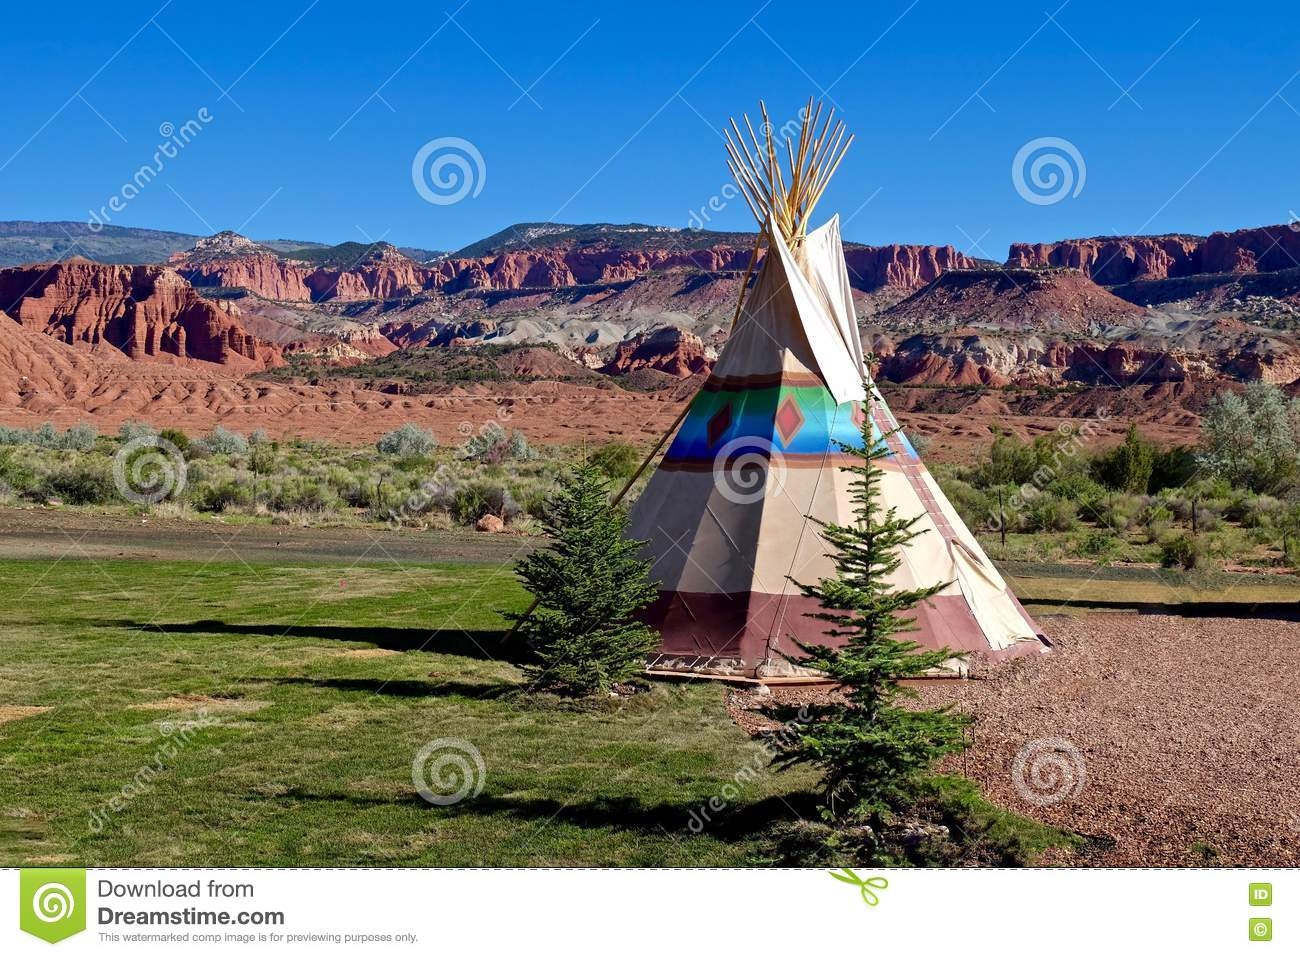 Camping At First Nation Teepee In American Wild West ...